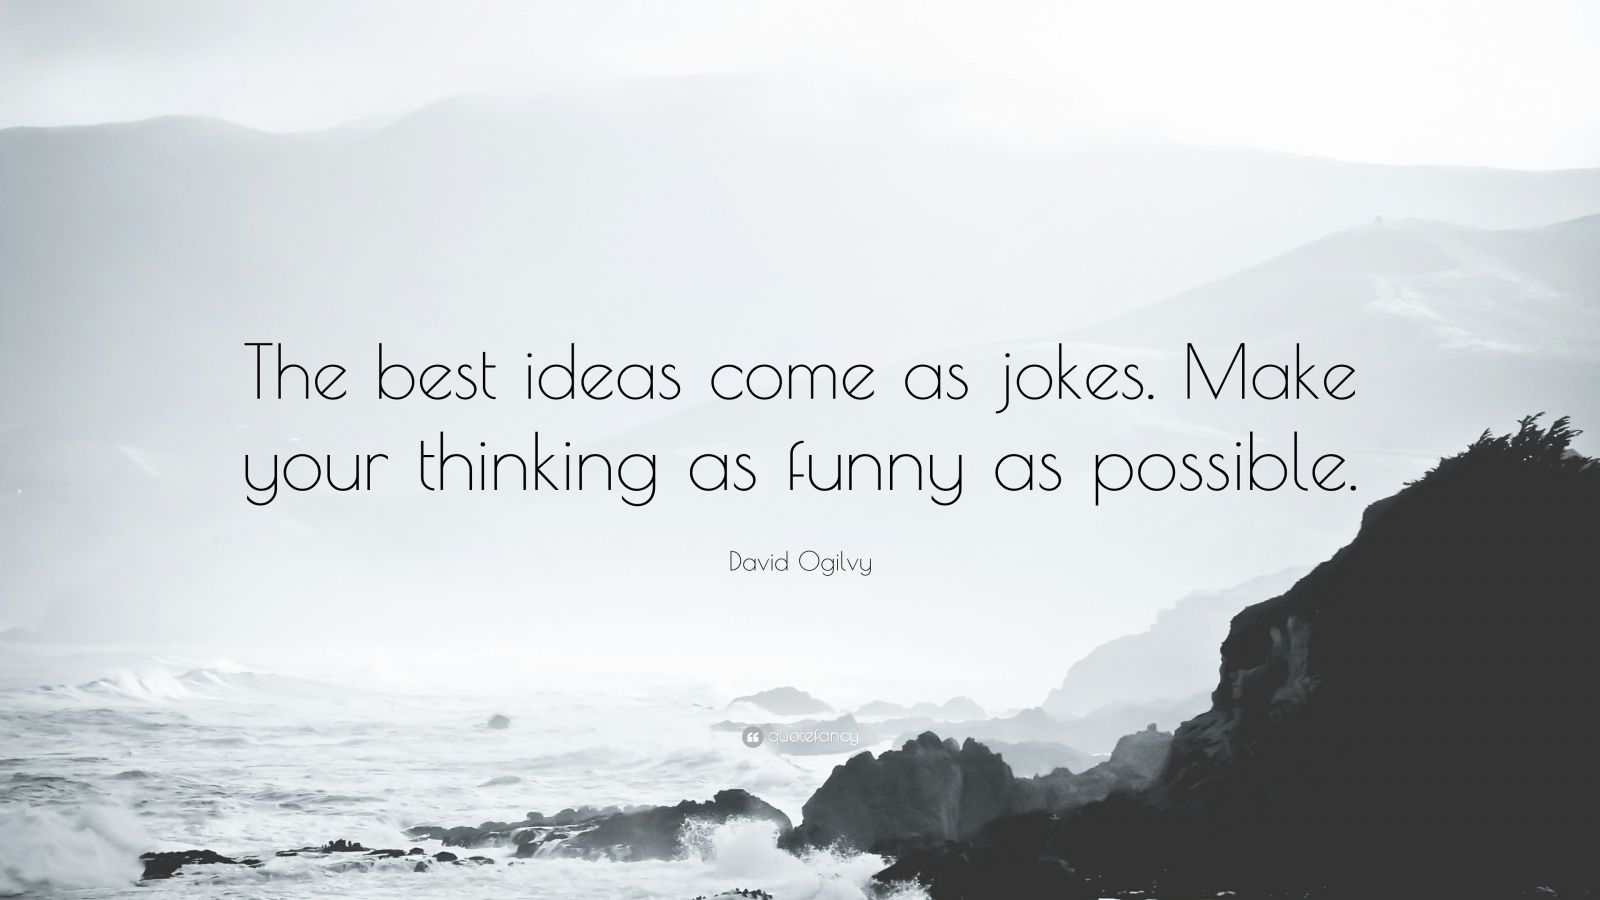 David Ogilvy Quotes Captivating David Ogilvy Quotes 100 Wallpapers  Quotefancy